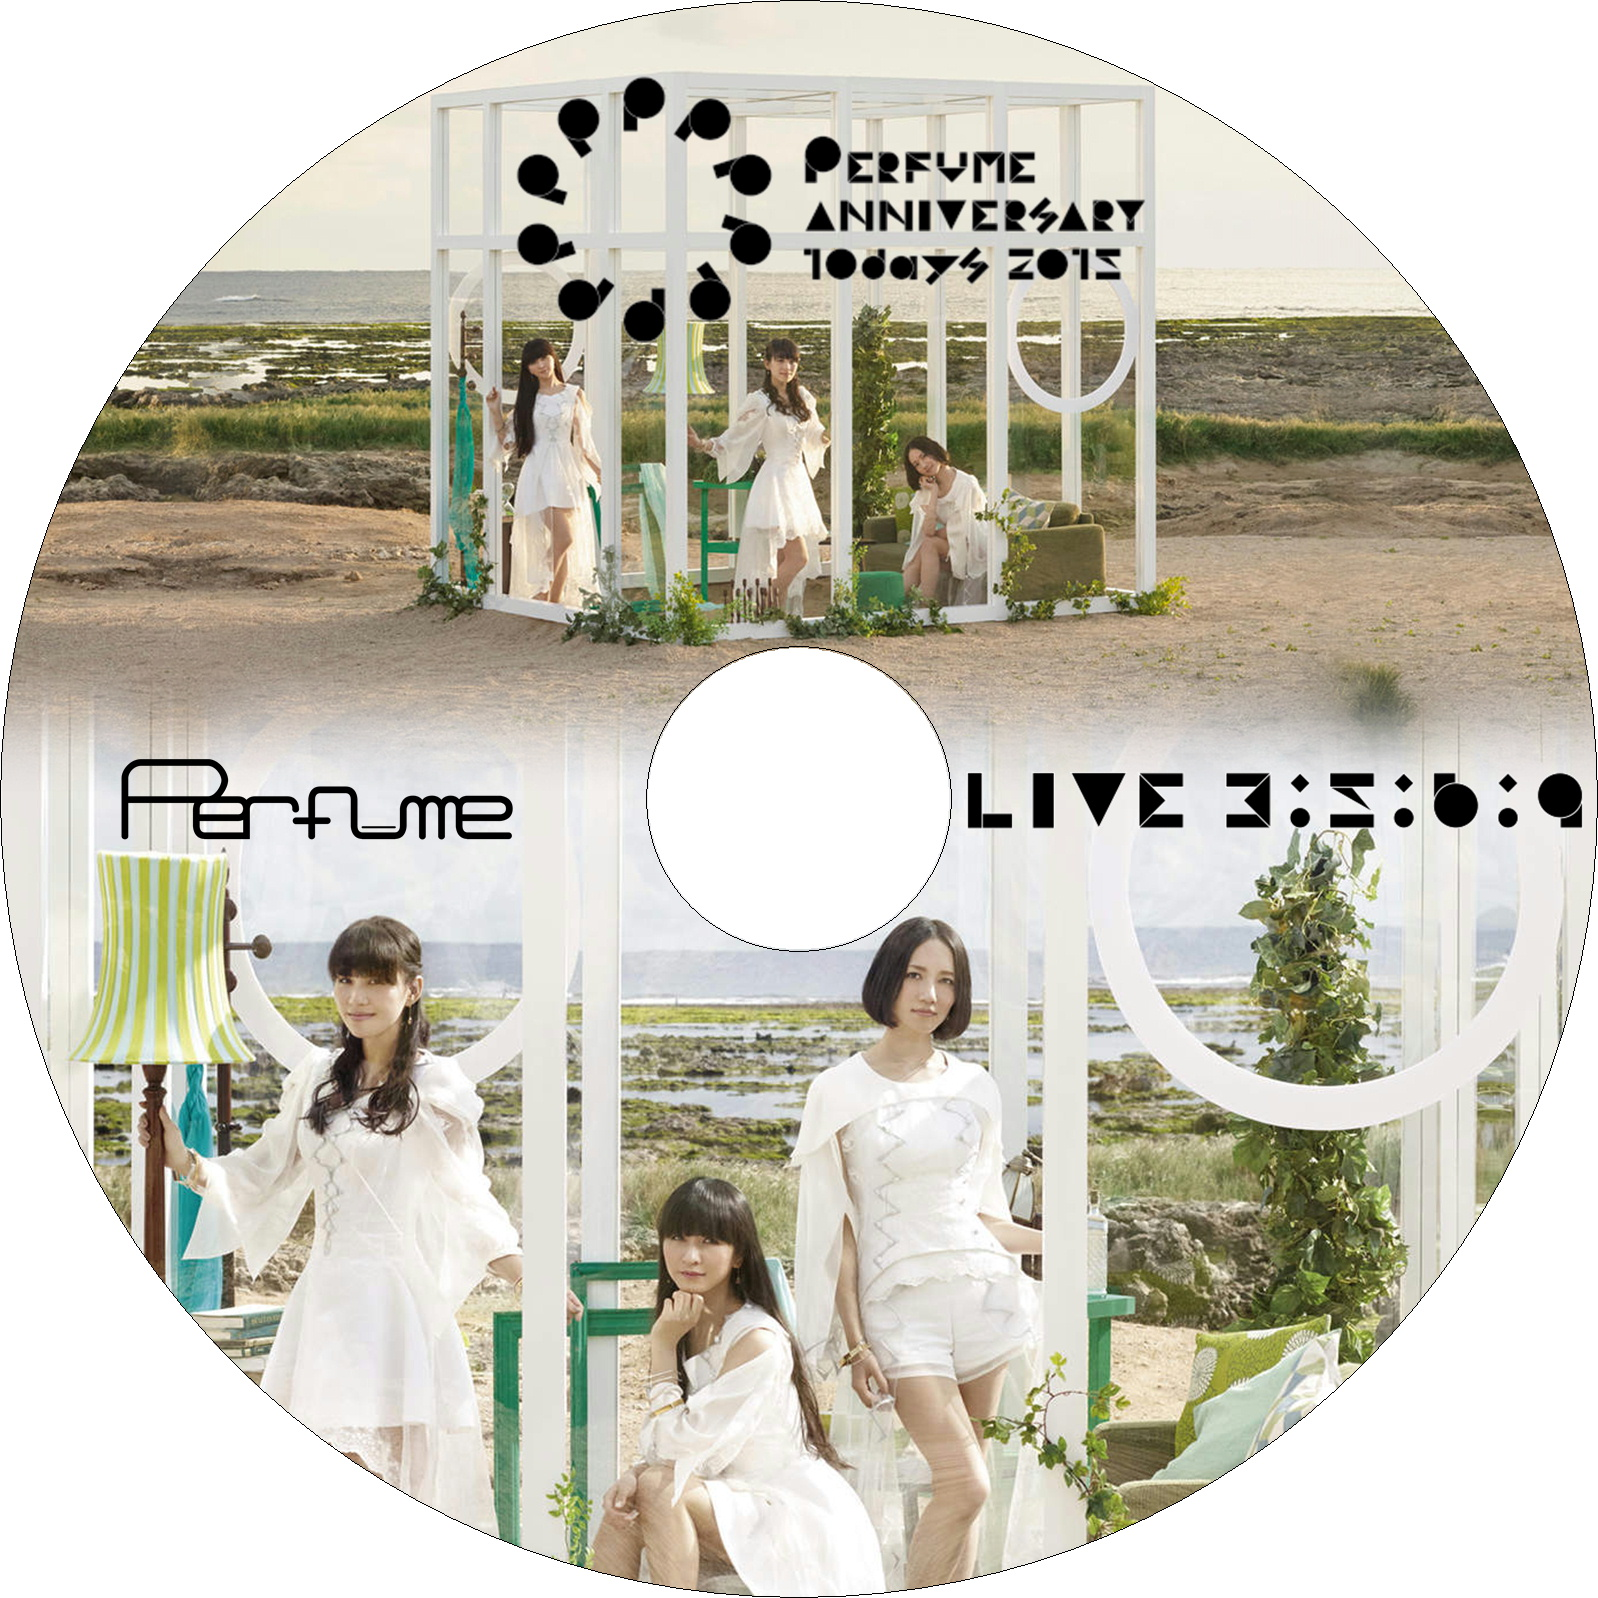 Perfume Anniversary 10days 2015 PPPPPPPPPP「LIVE 3:5:6:9」 ラベル